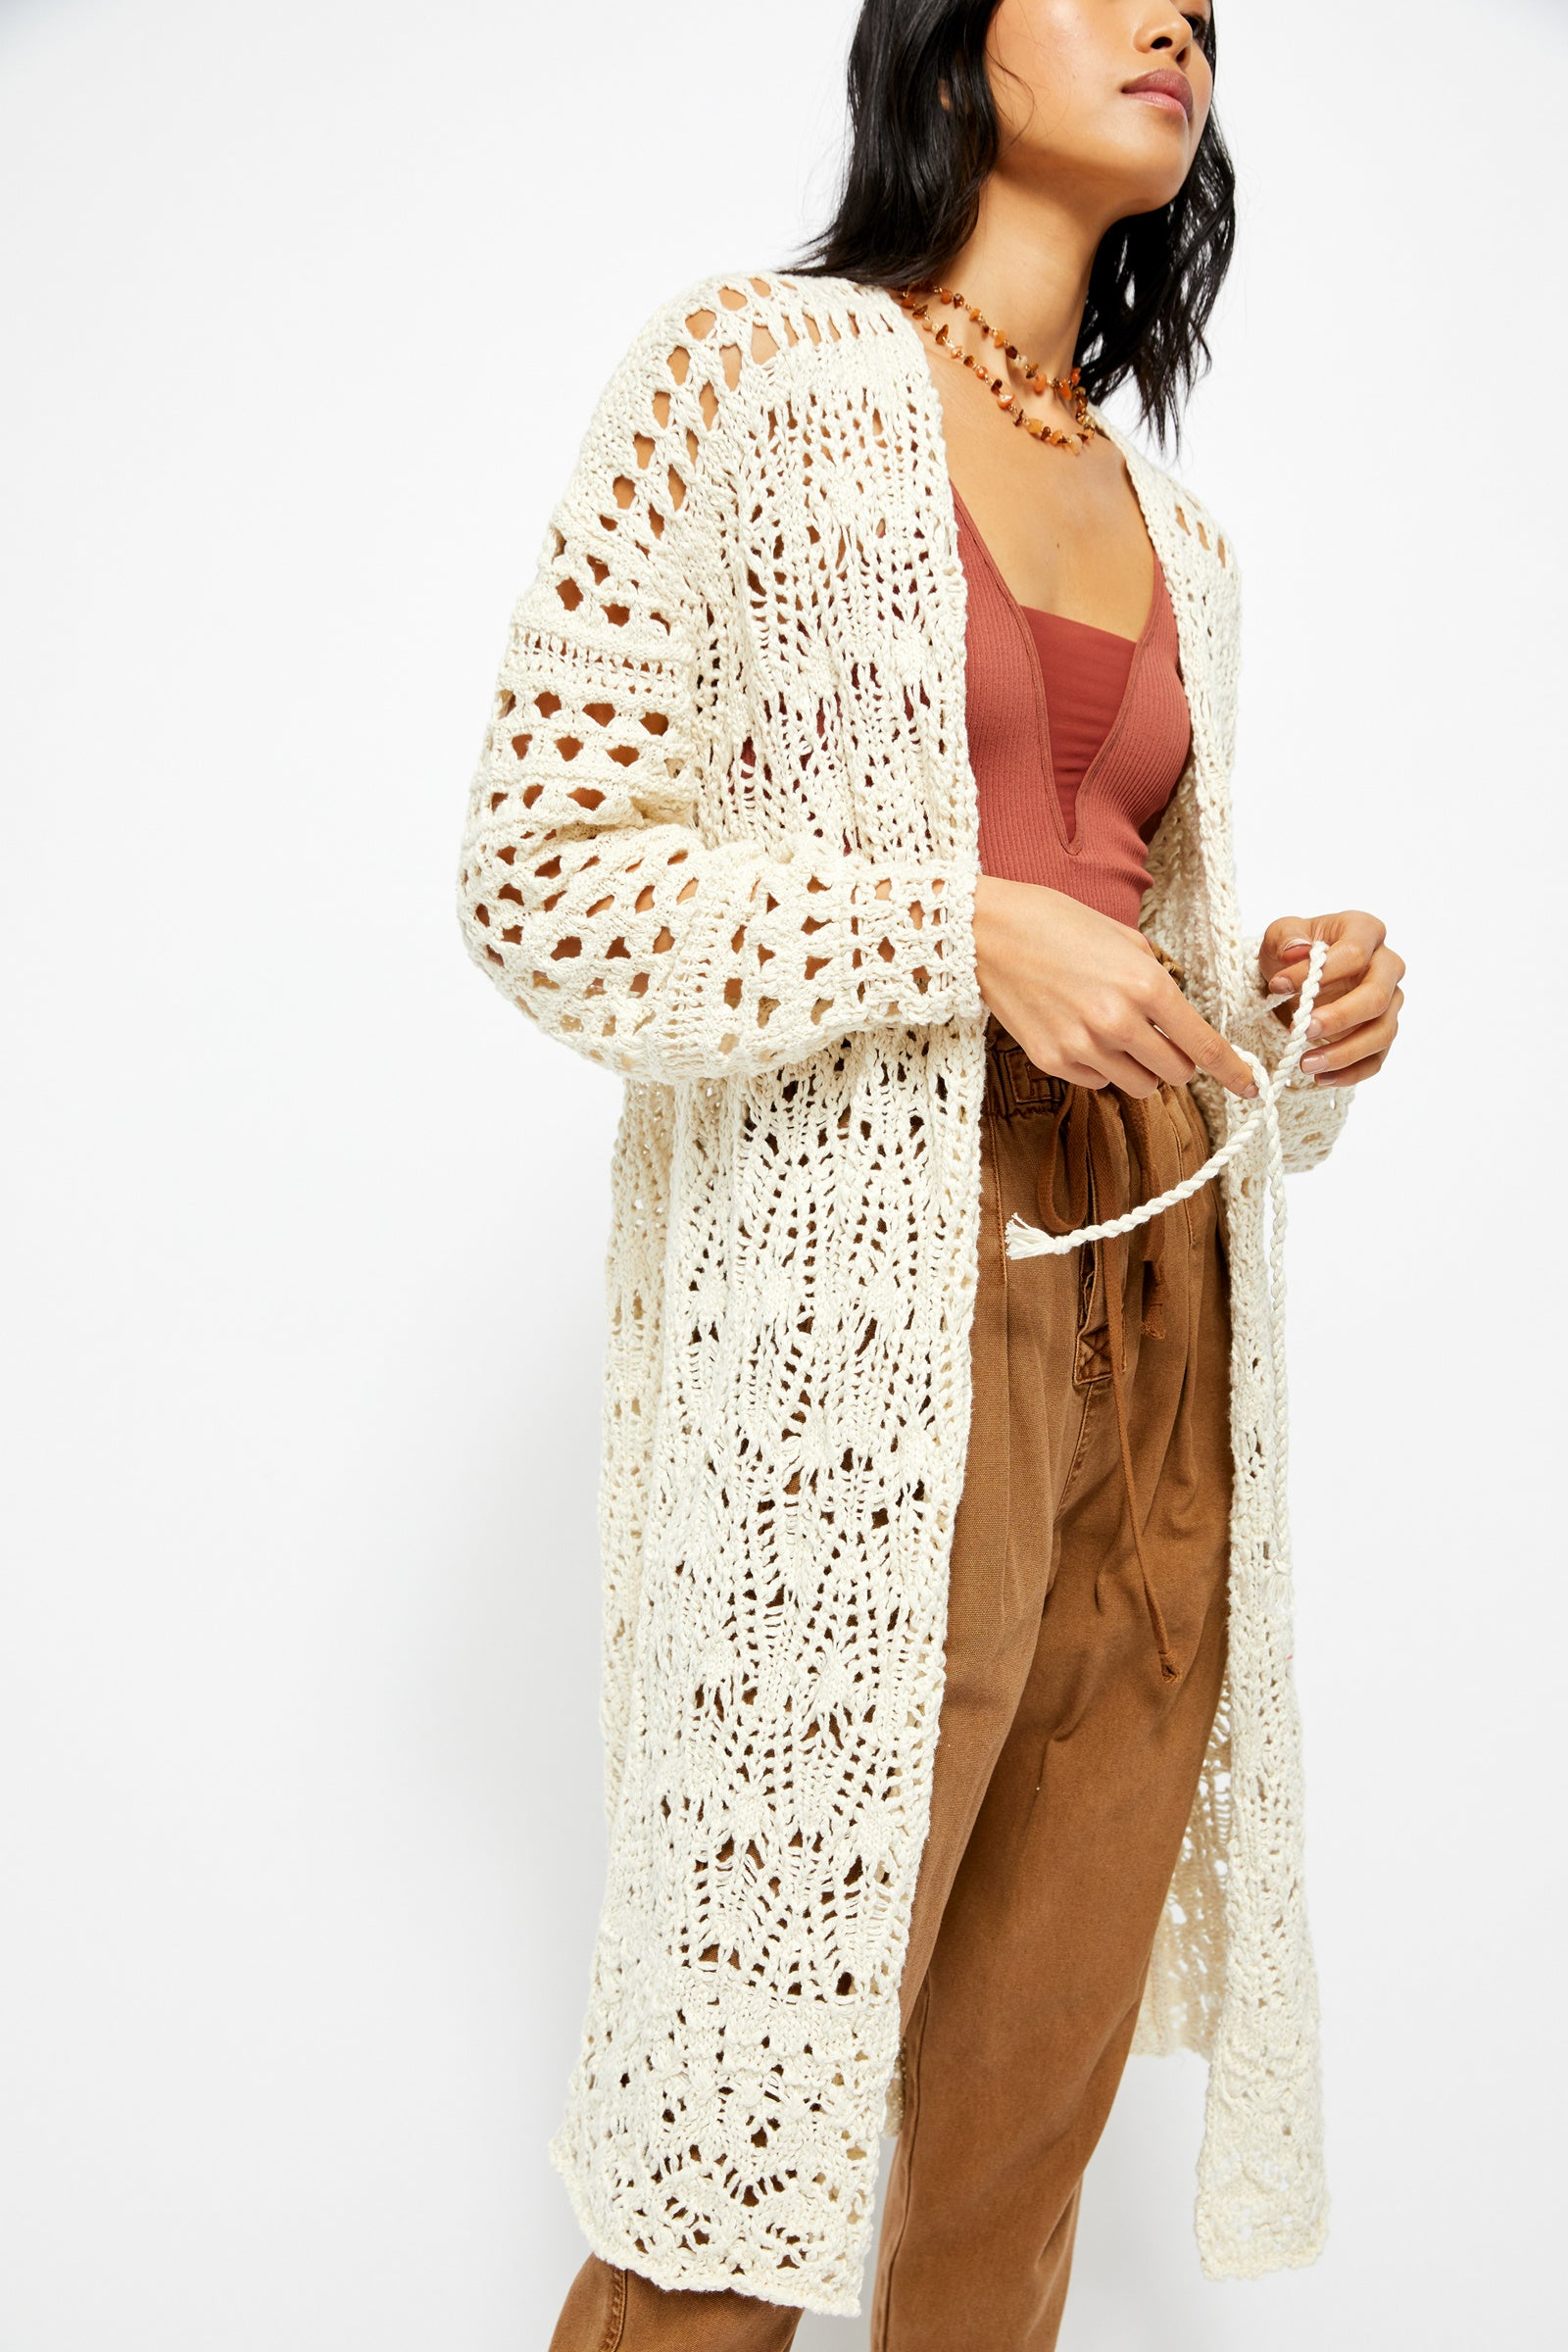 Sweet Talker Cardi - The Canyon